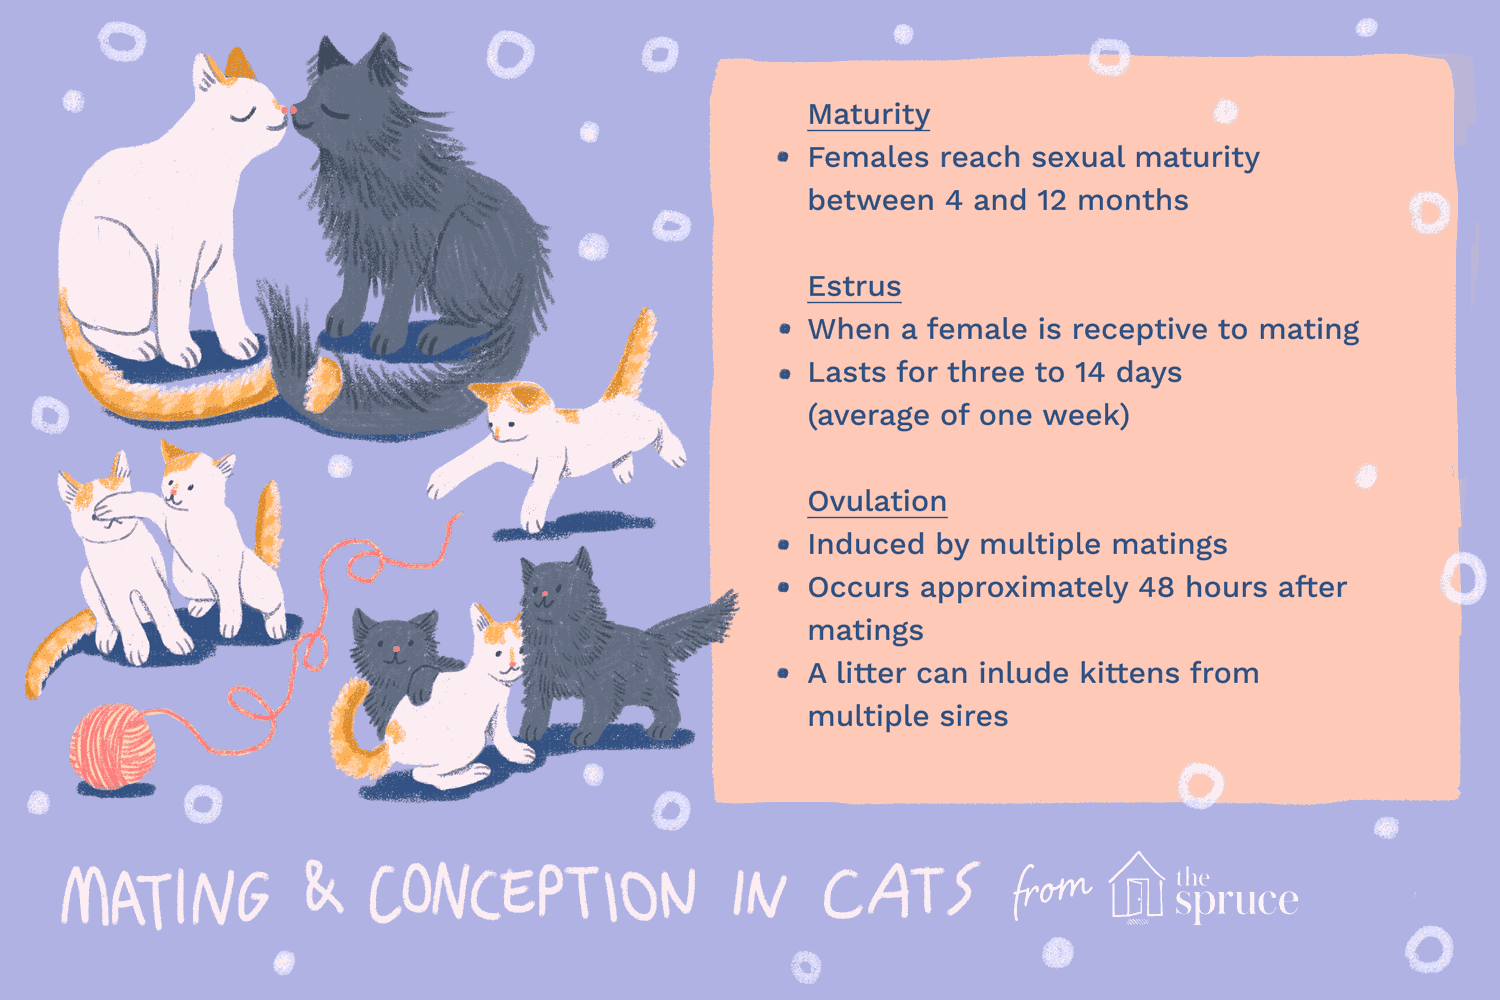 Mating and Conception in Cats